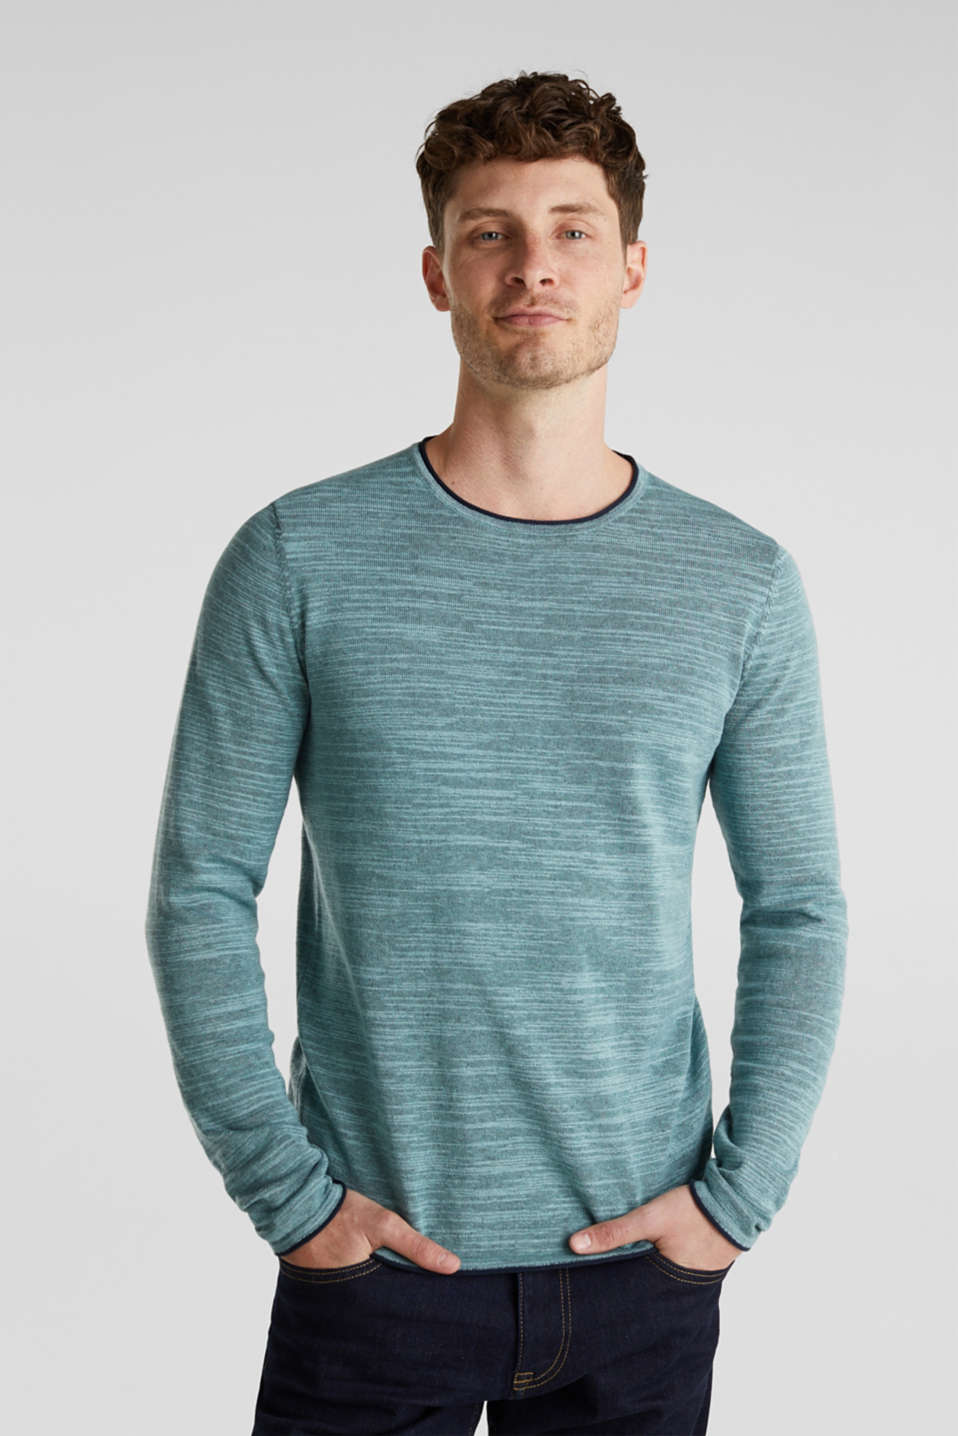 edc - Jumper made of bi-colour blended cotton yarn